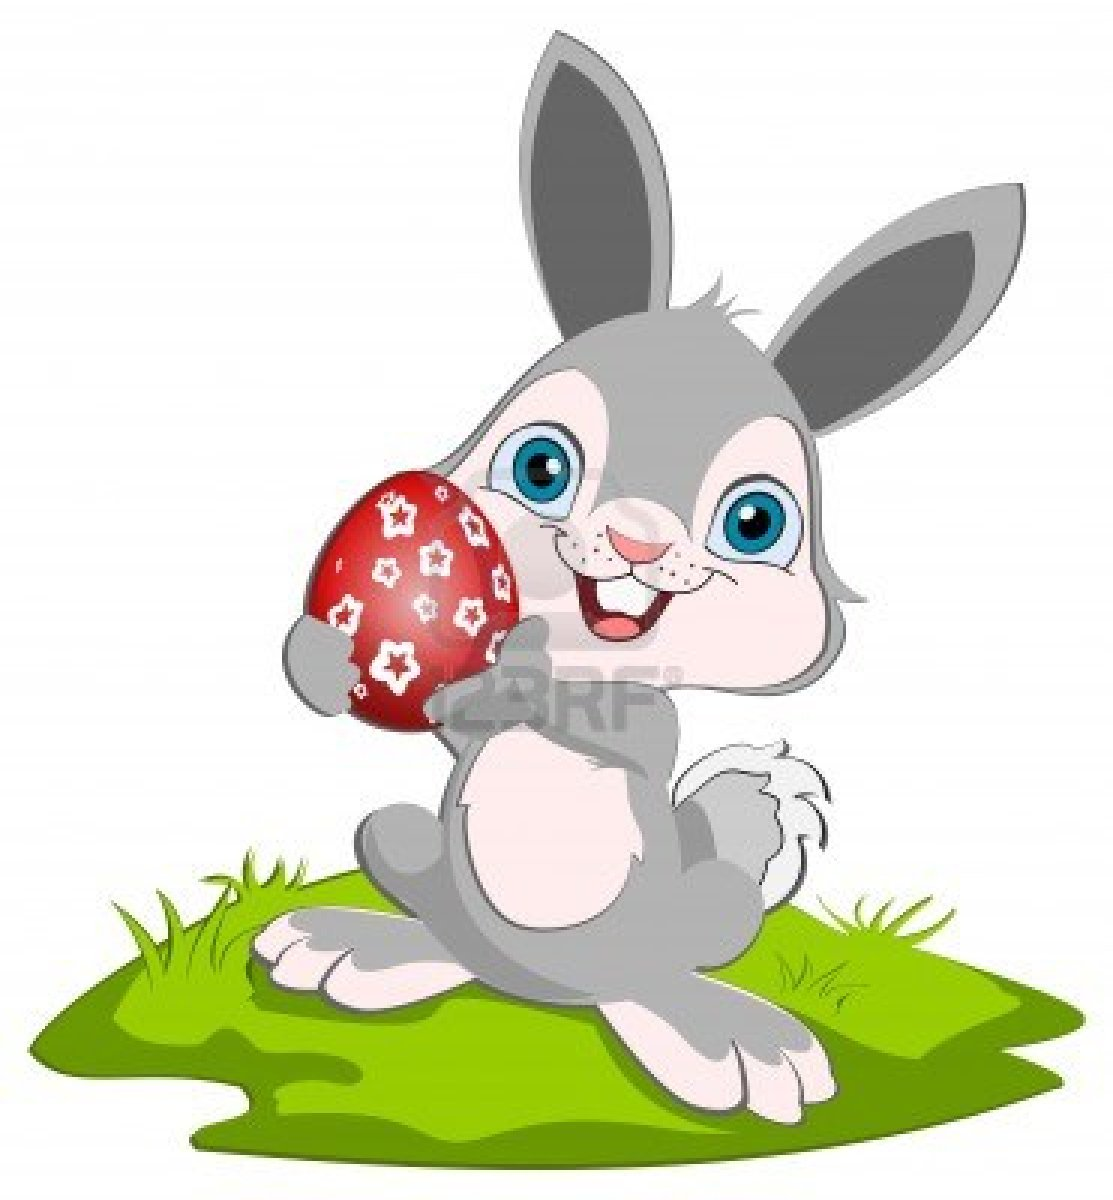 12980013 Easter Bunny Holding O Rad Easter Egg And Smiling